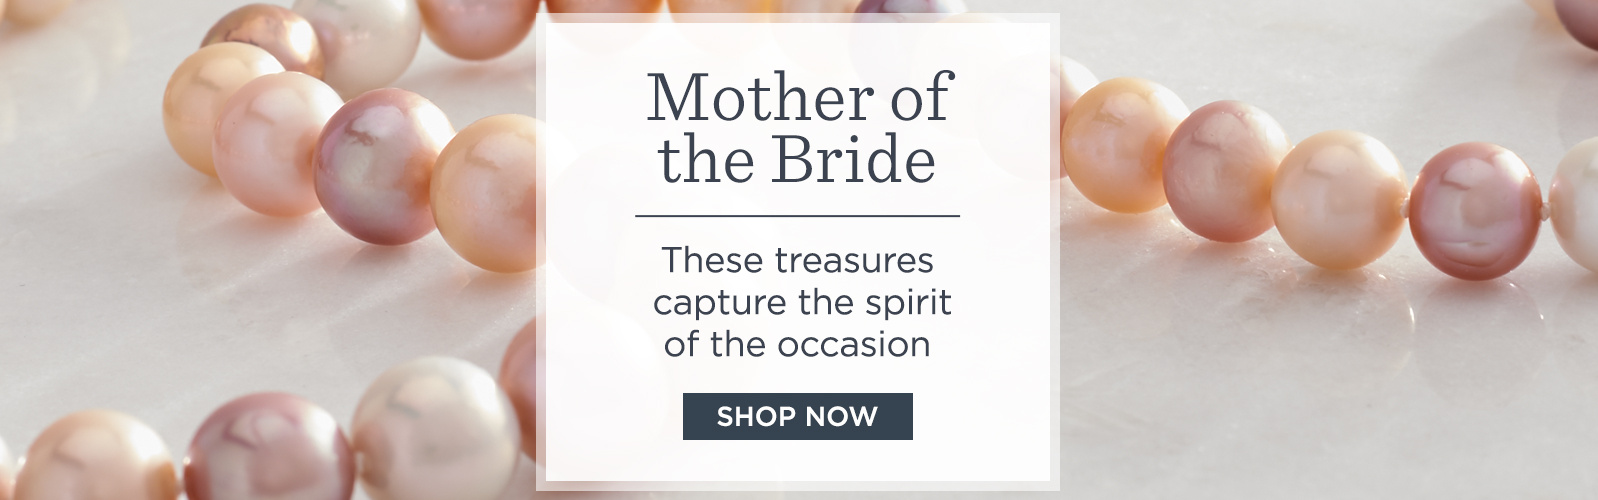 Mother of the Bride - These treasures capture the spirit of the occasion - SHOP NOW